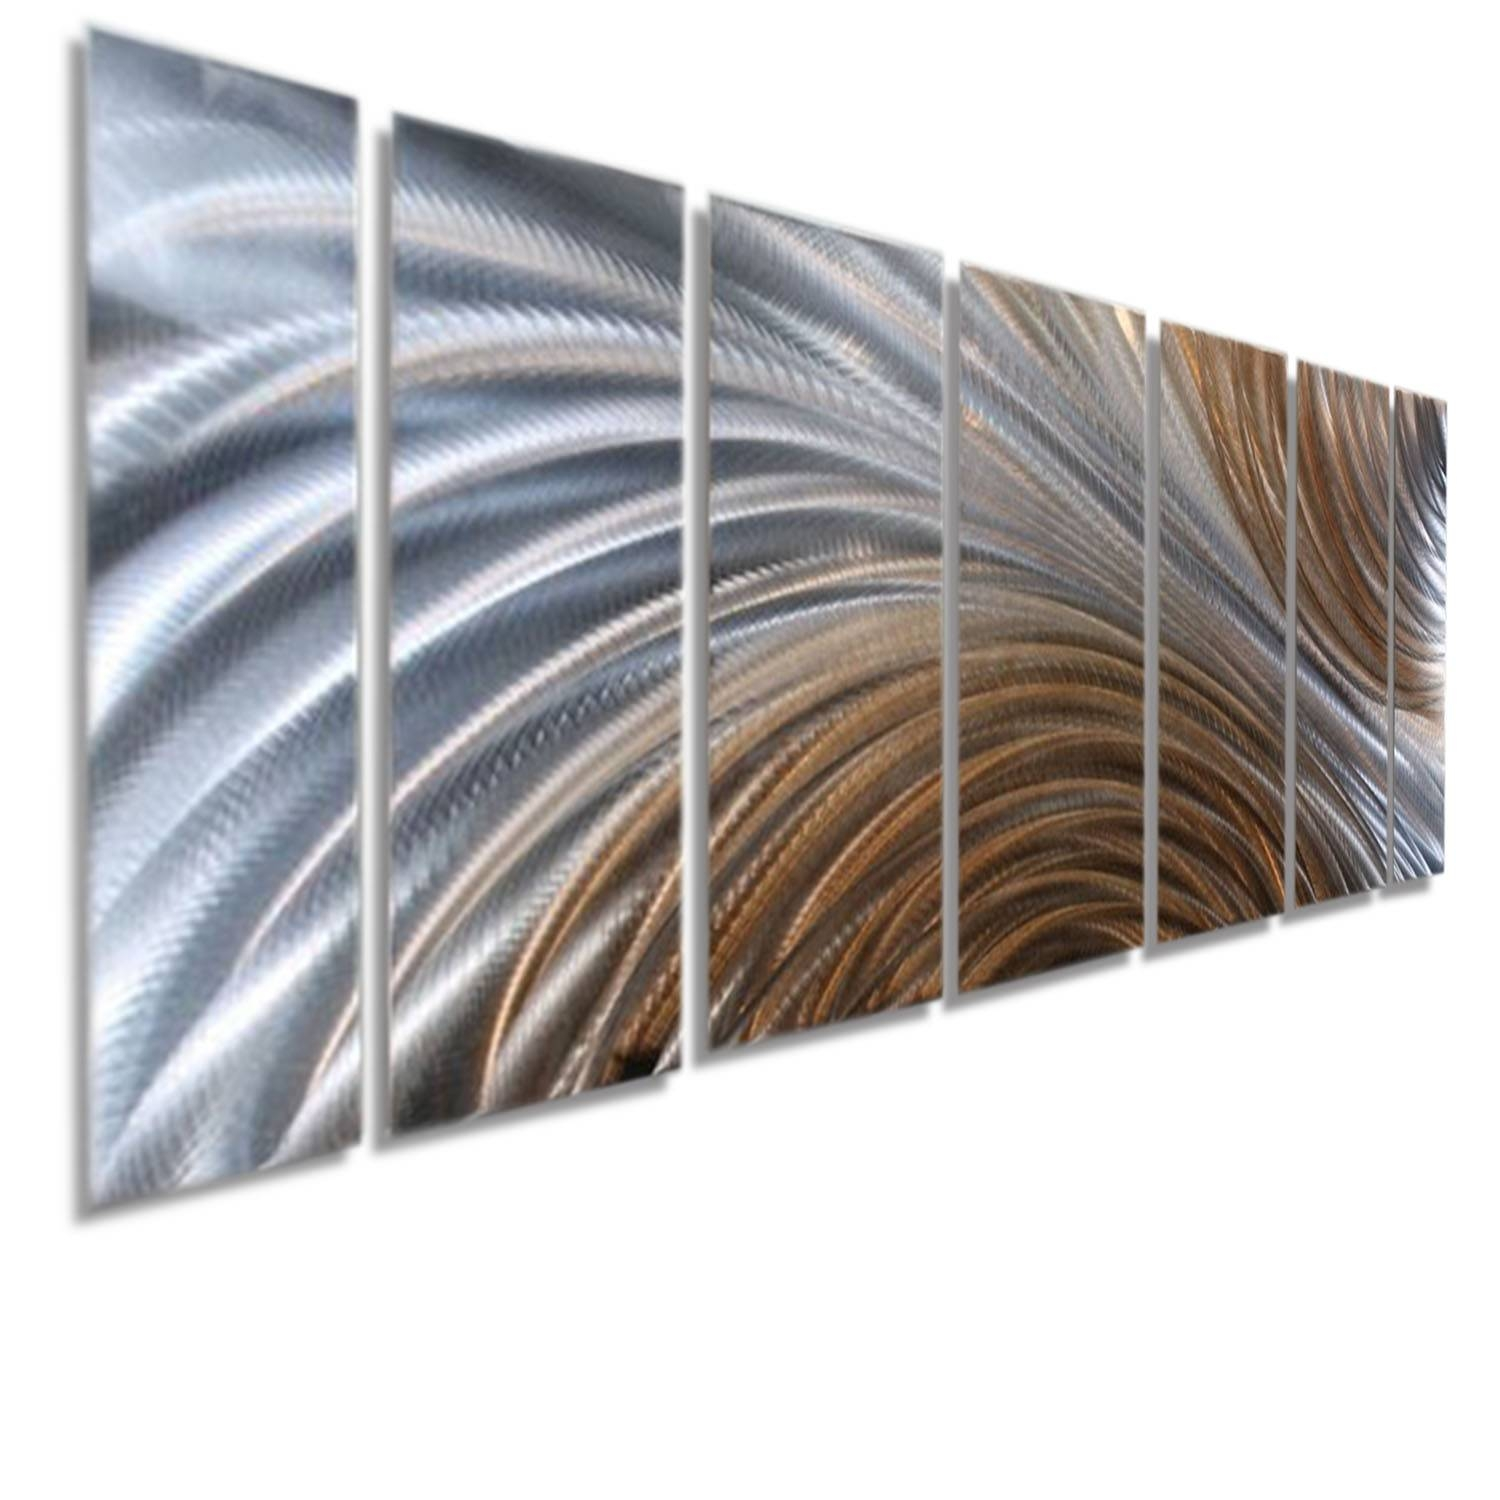 Amber Ascension Xl – Extra Large Silver & Copper Abstract Metal Pertaining To Most Recently Released Extra Large Metal Wall Art (View 1 of 20)